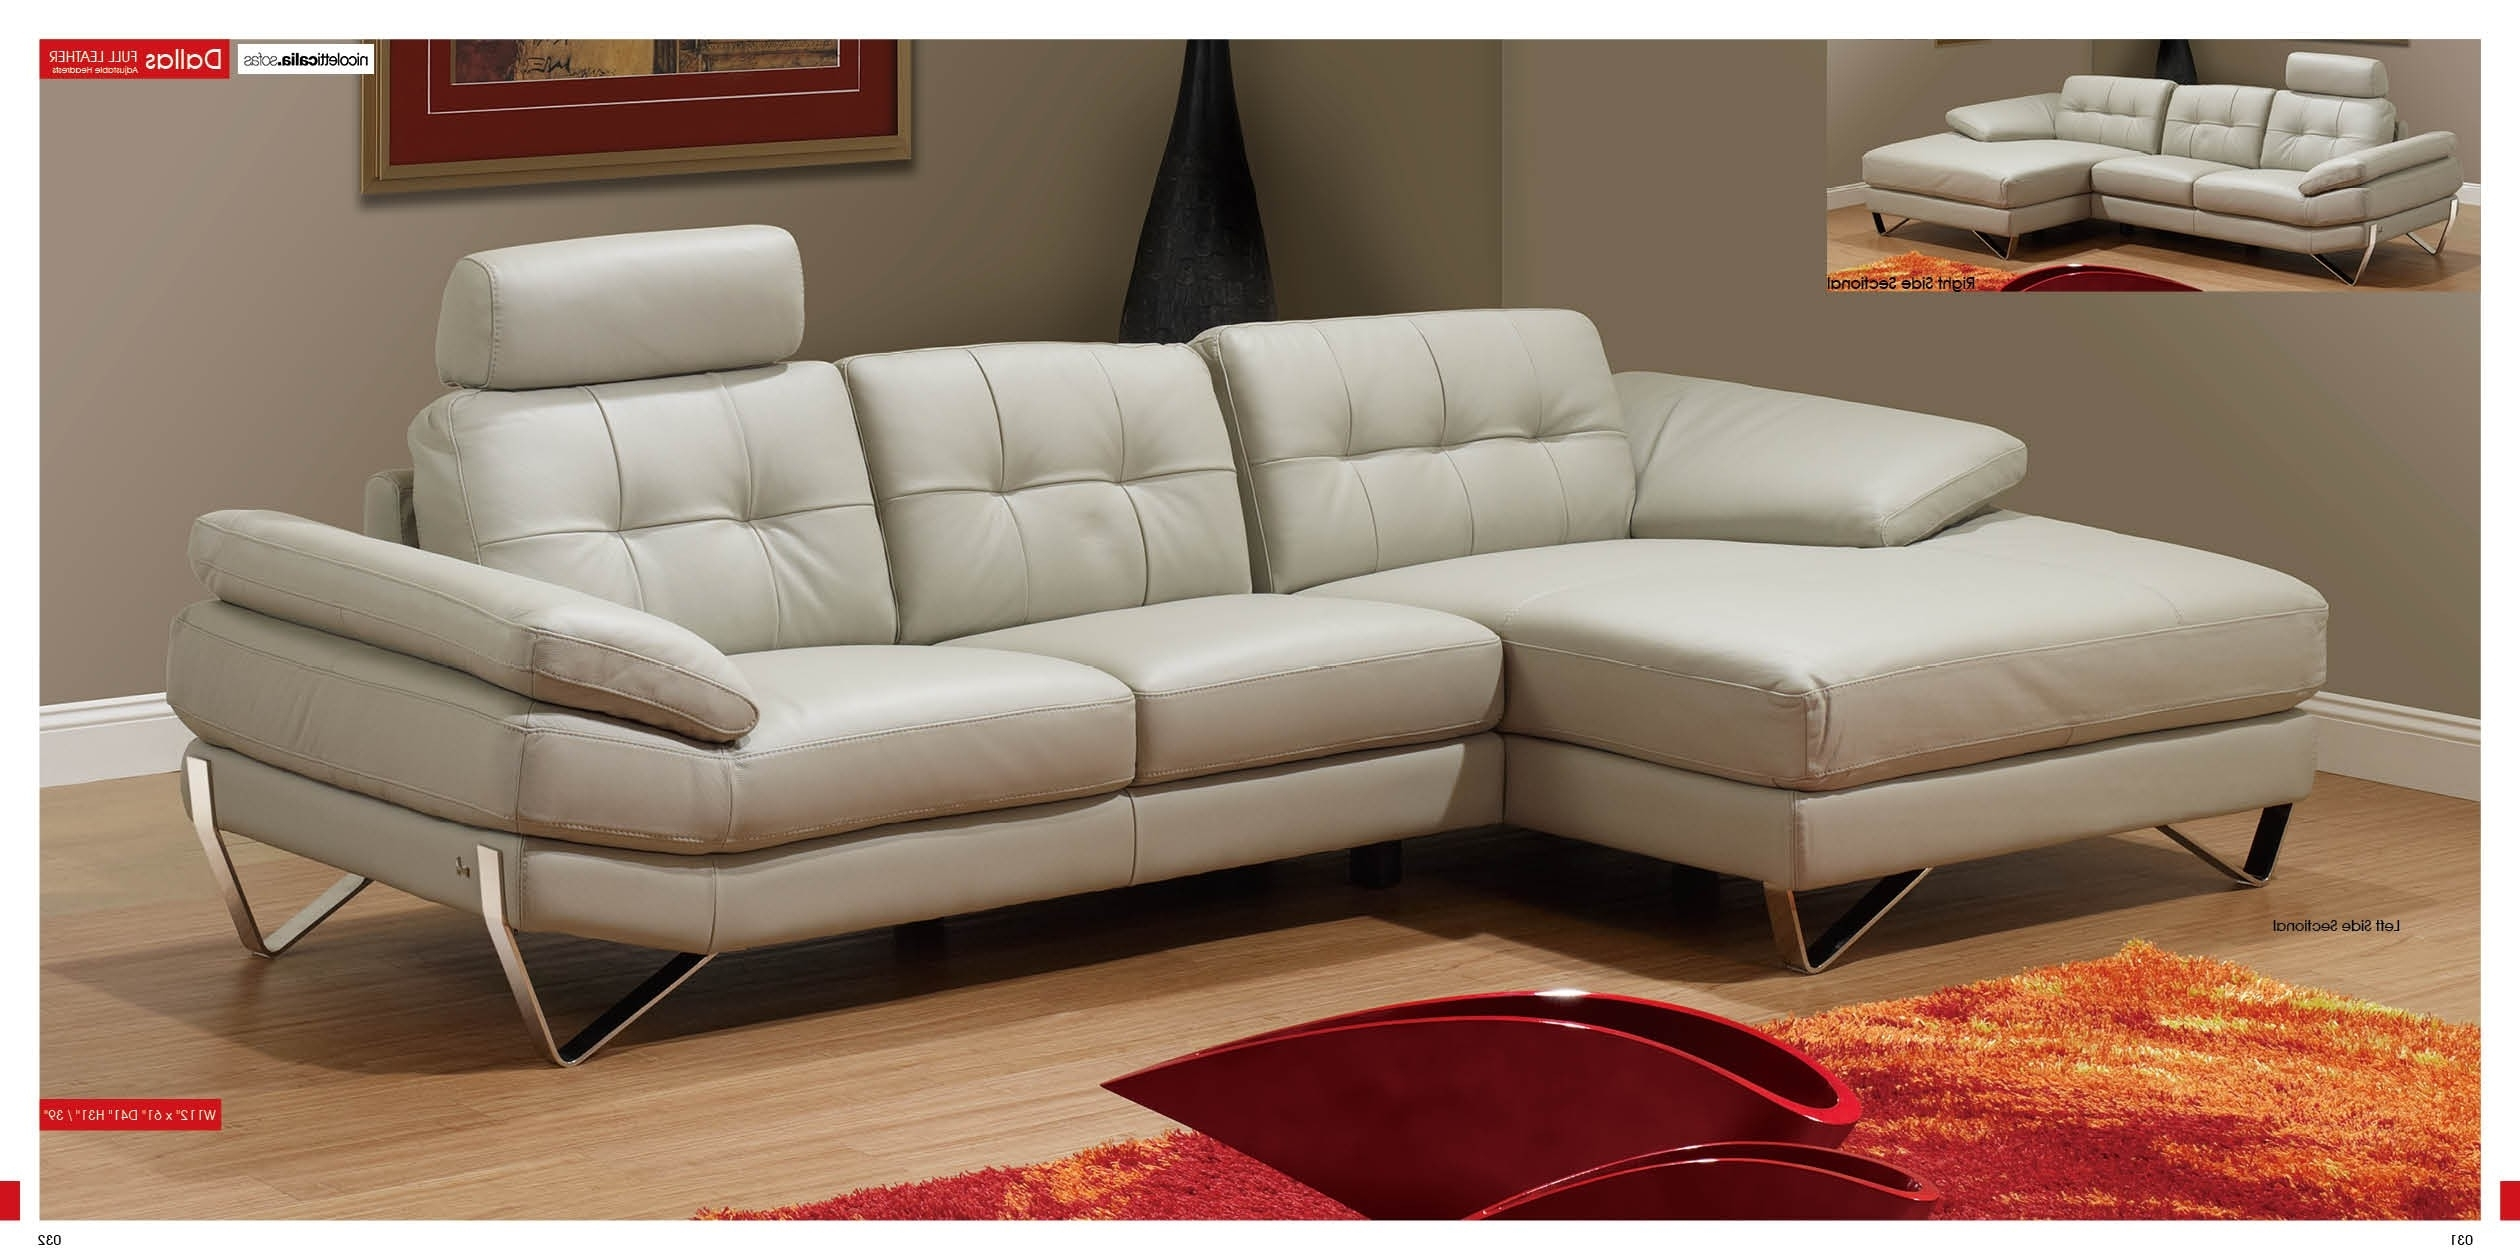 Furniture & Sofa: Glamorous Interior Furniture Designhavertys Throughout Most Recently Released Macon Ga Sectional Sofas (View 5 of 15)